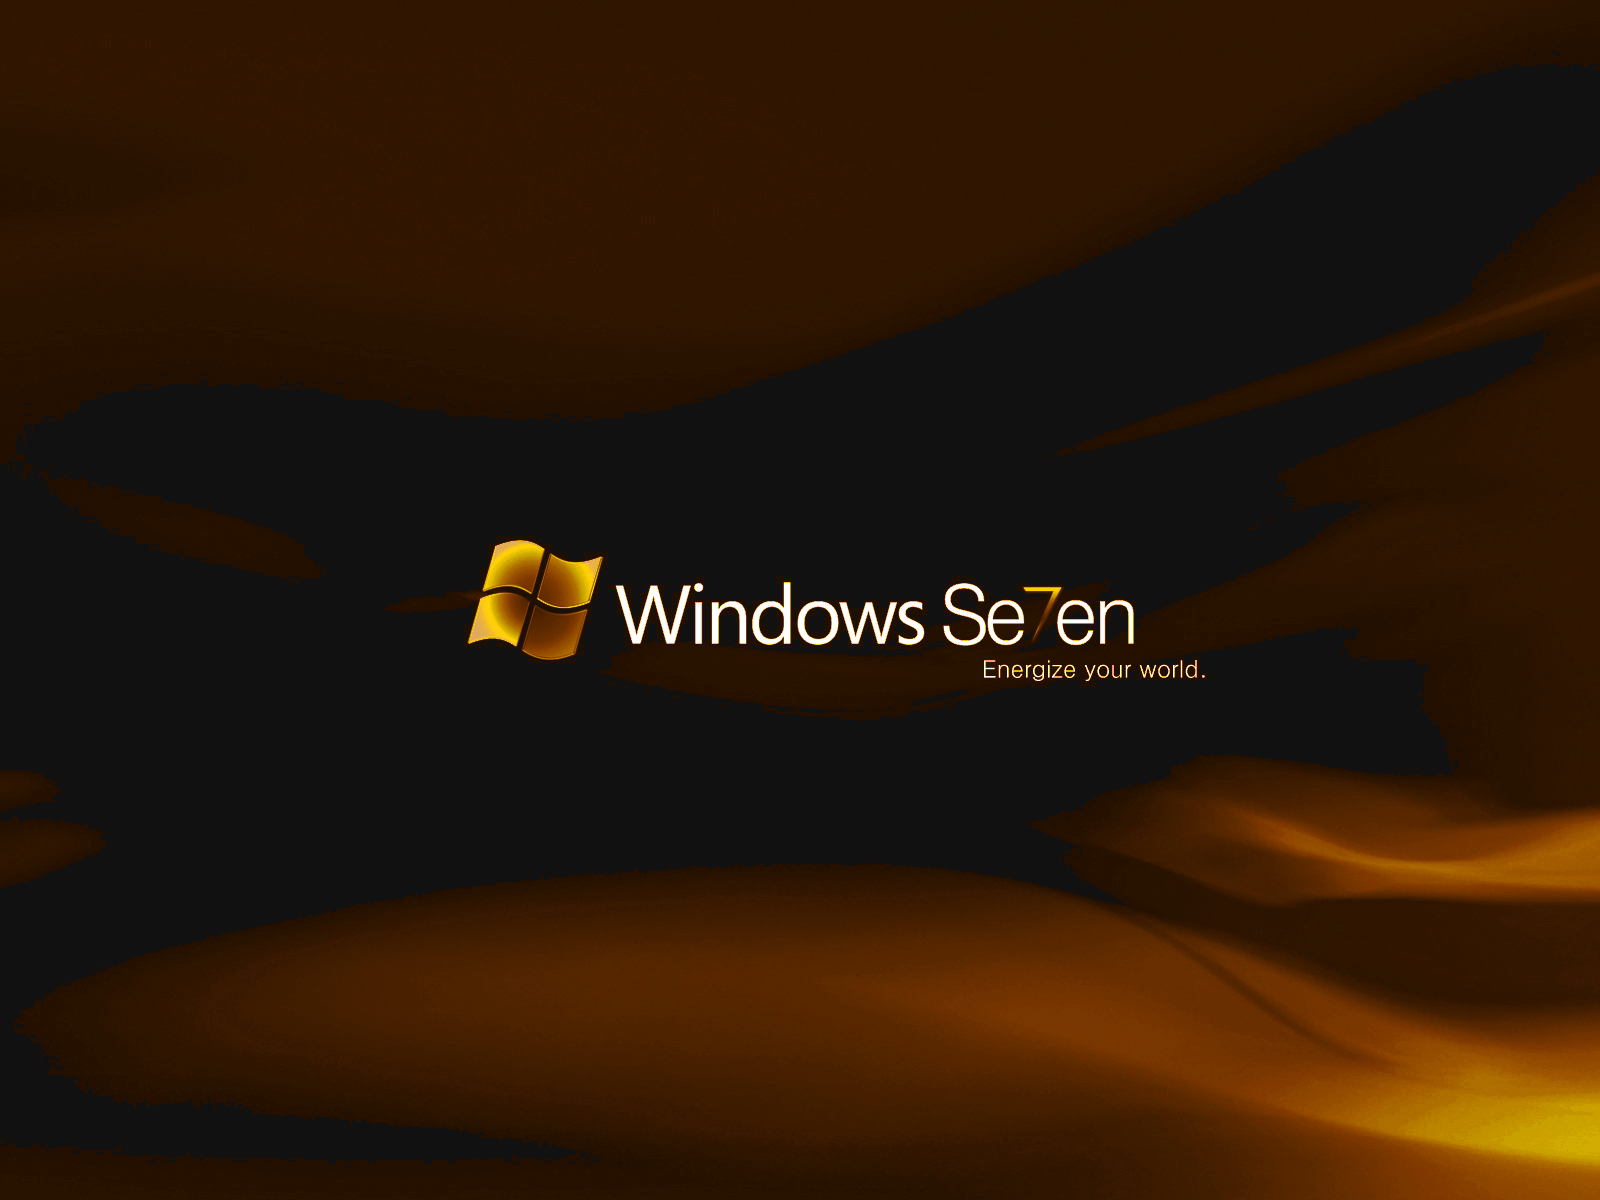 Windows 7 Wallpaper 2 by The-man-who-writes